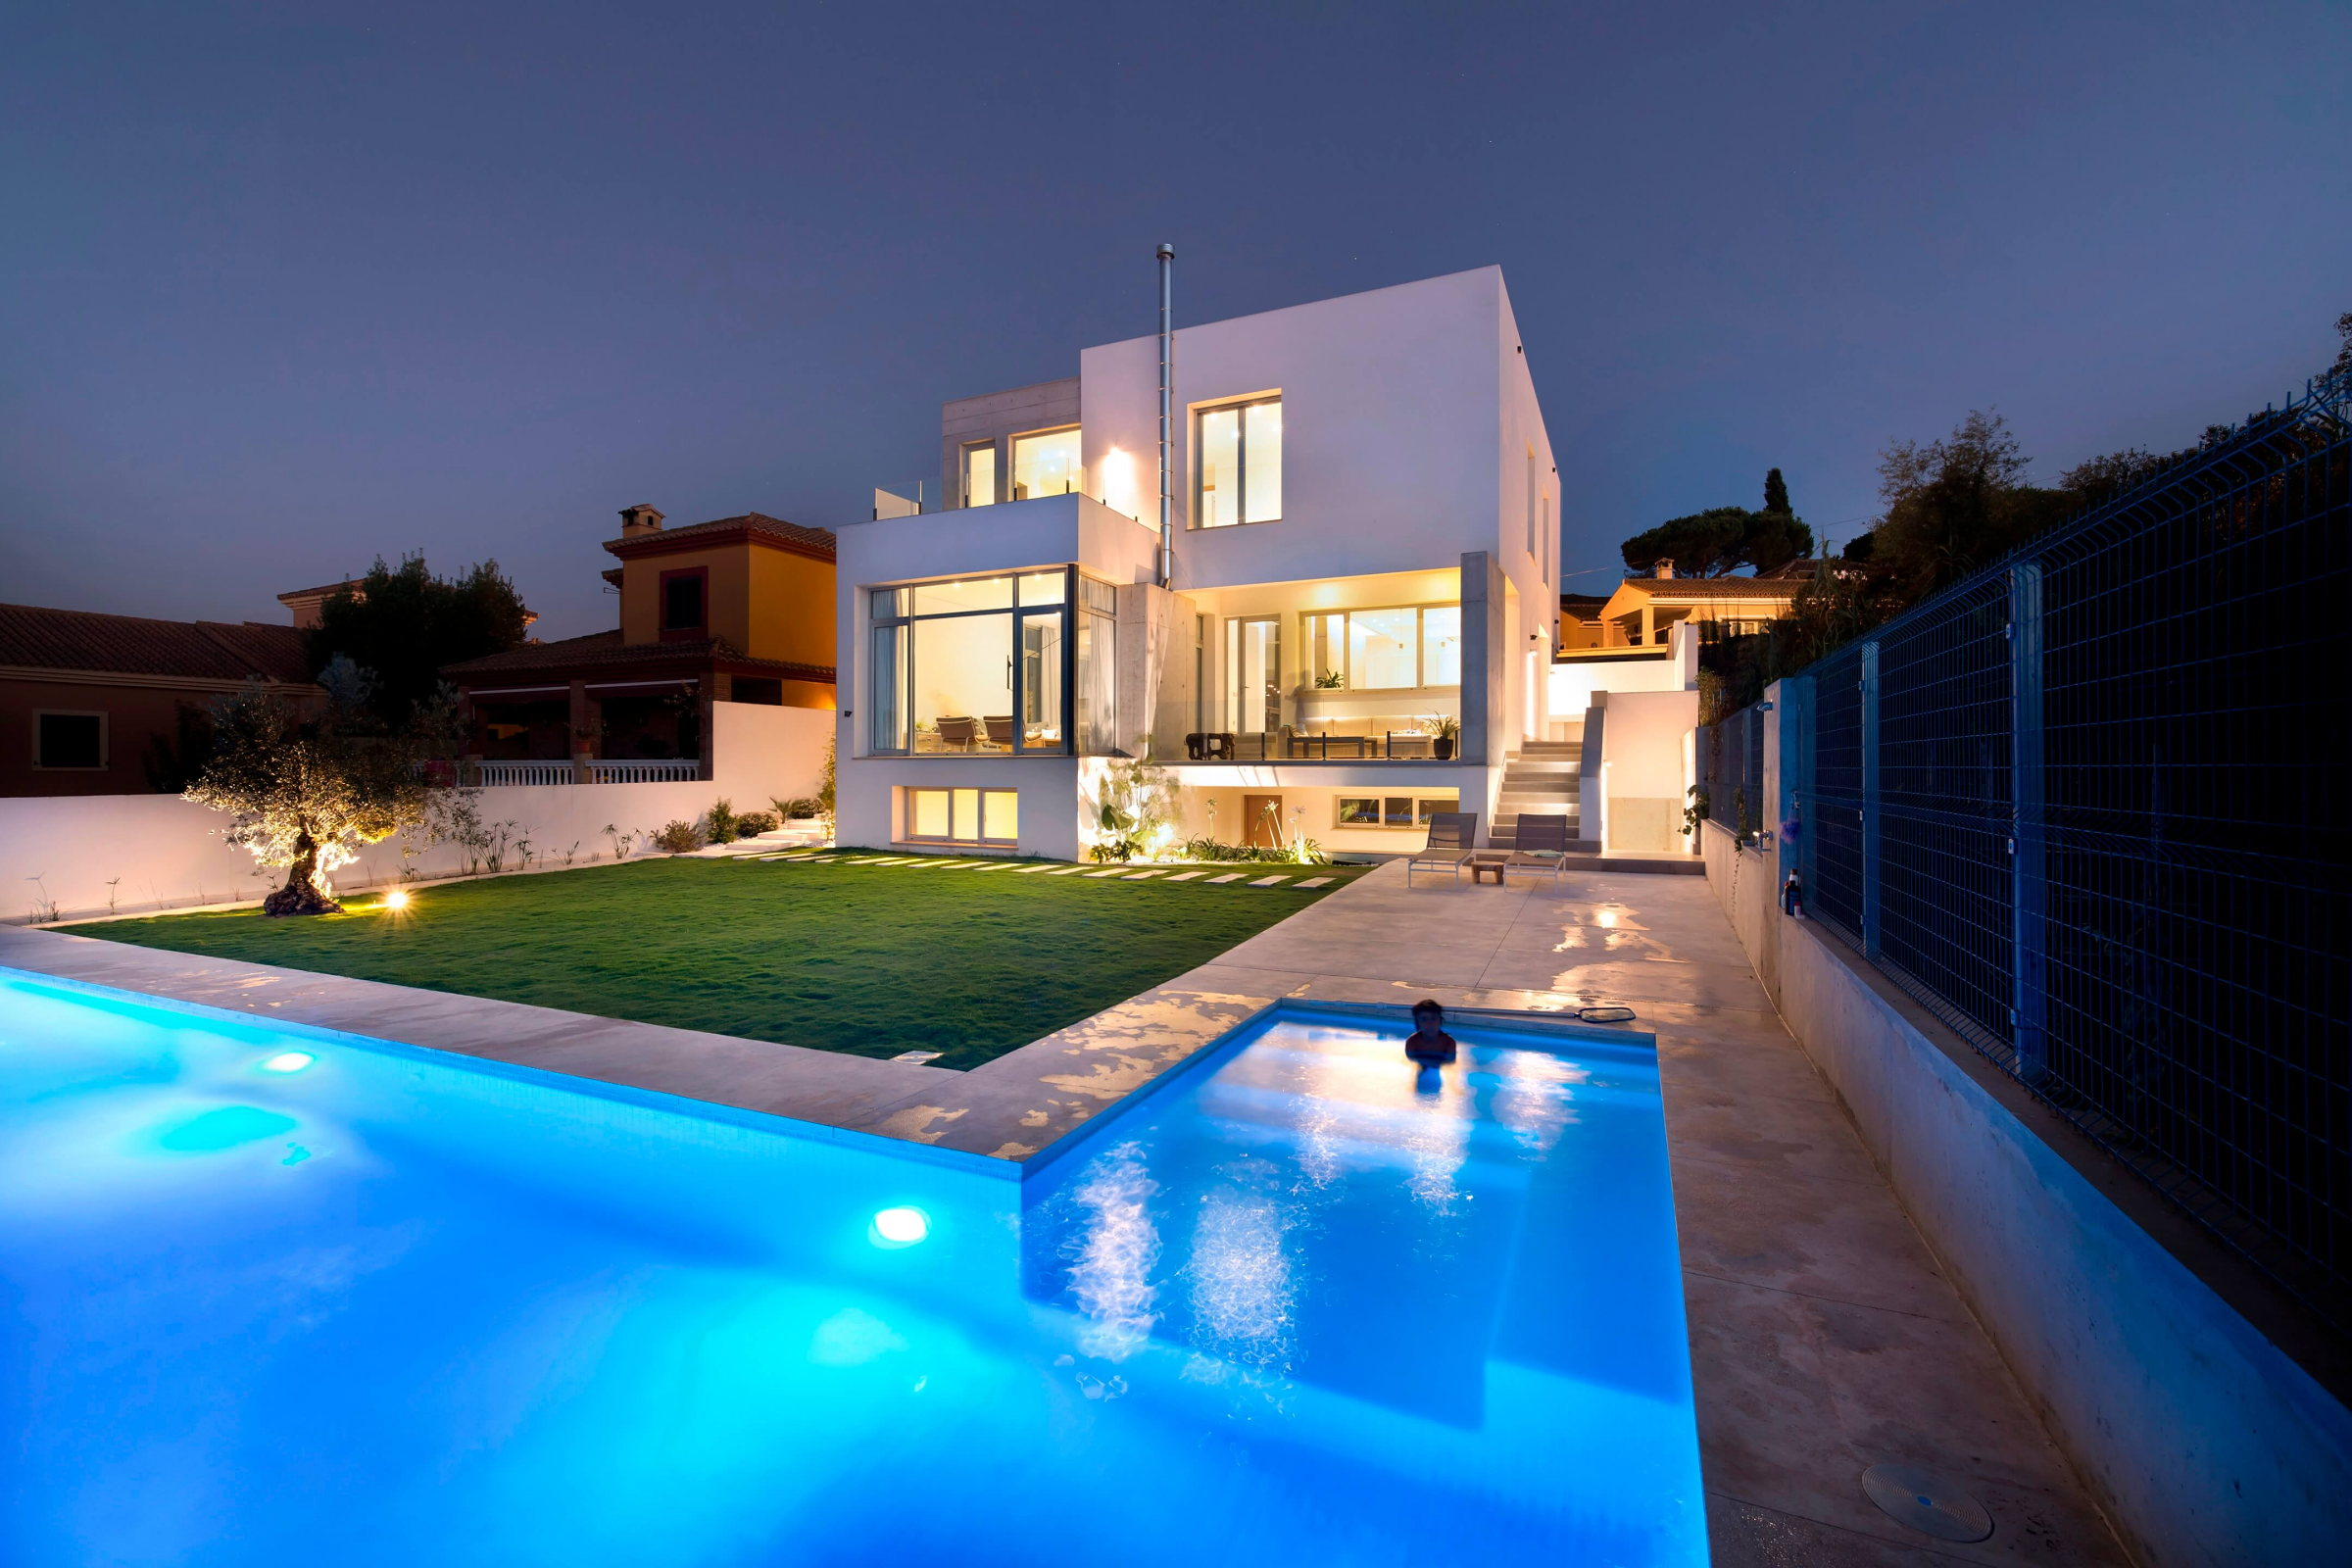 Two storey casa manduka house on the south of spain upon for Designer casa